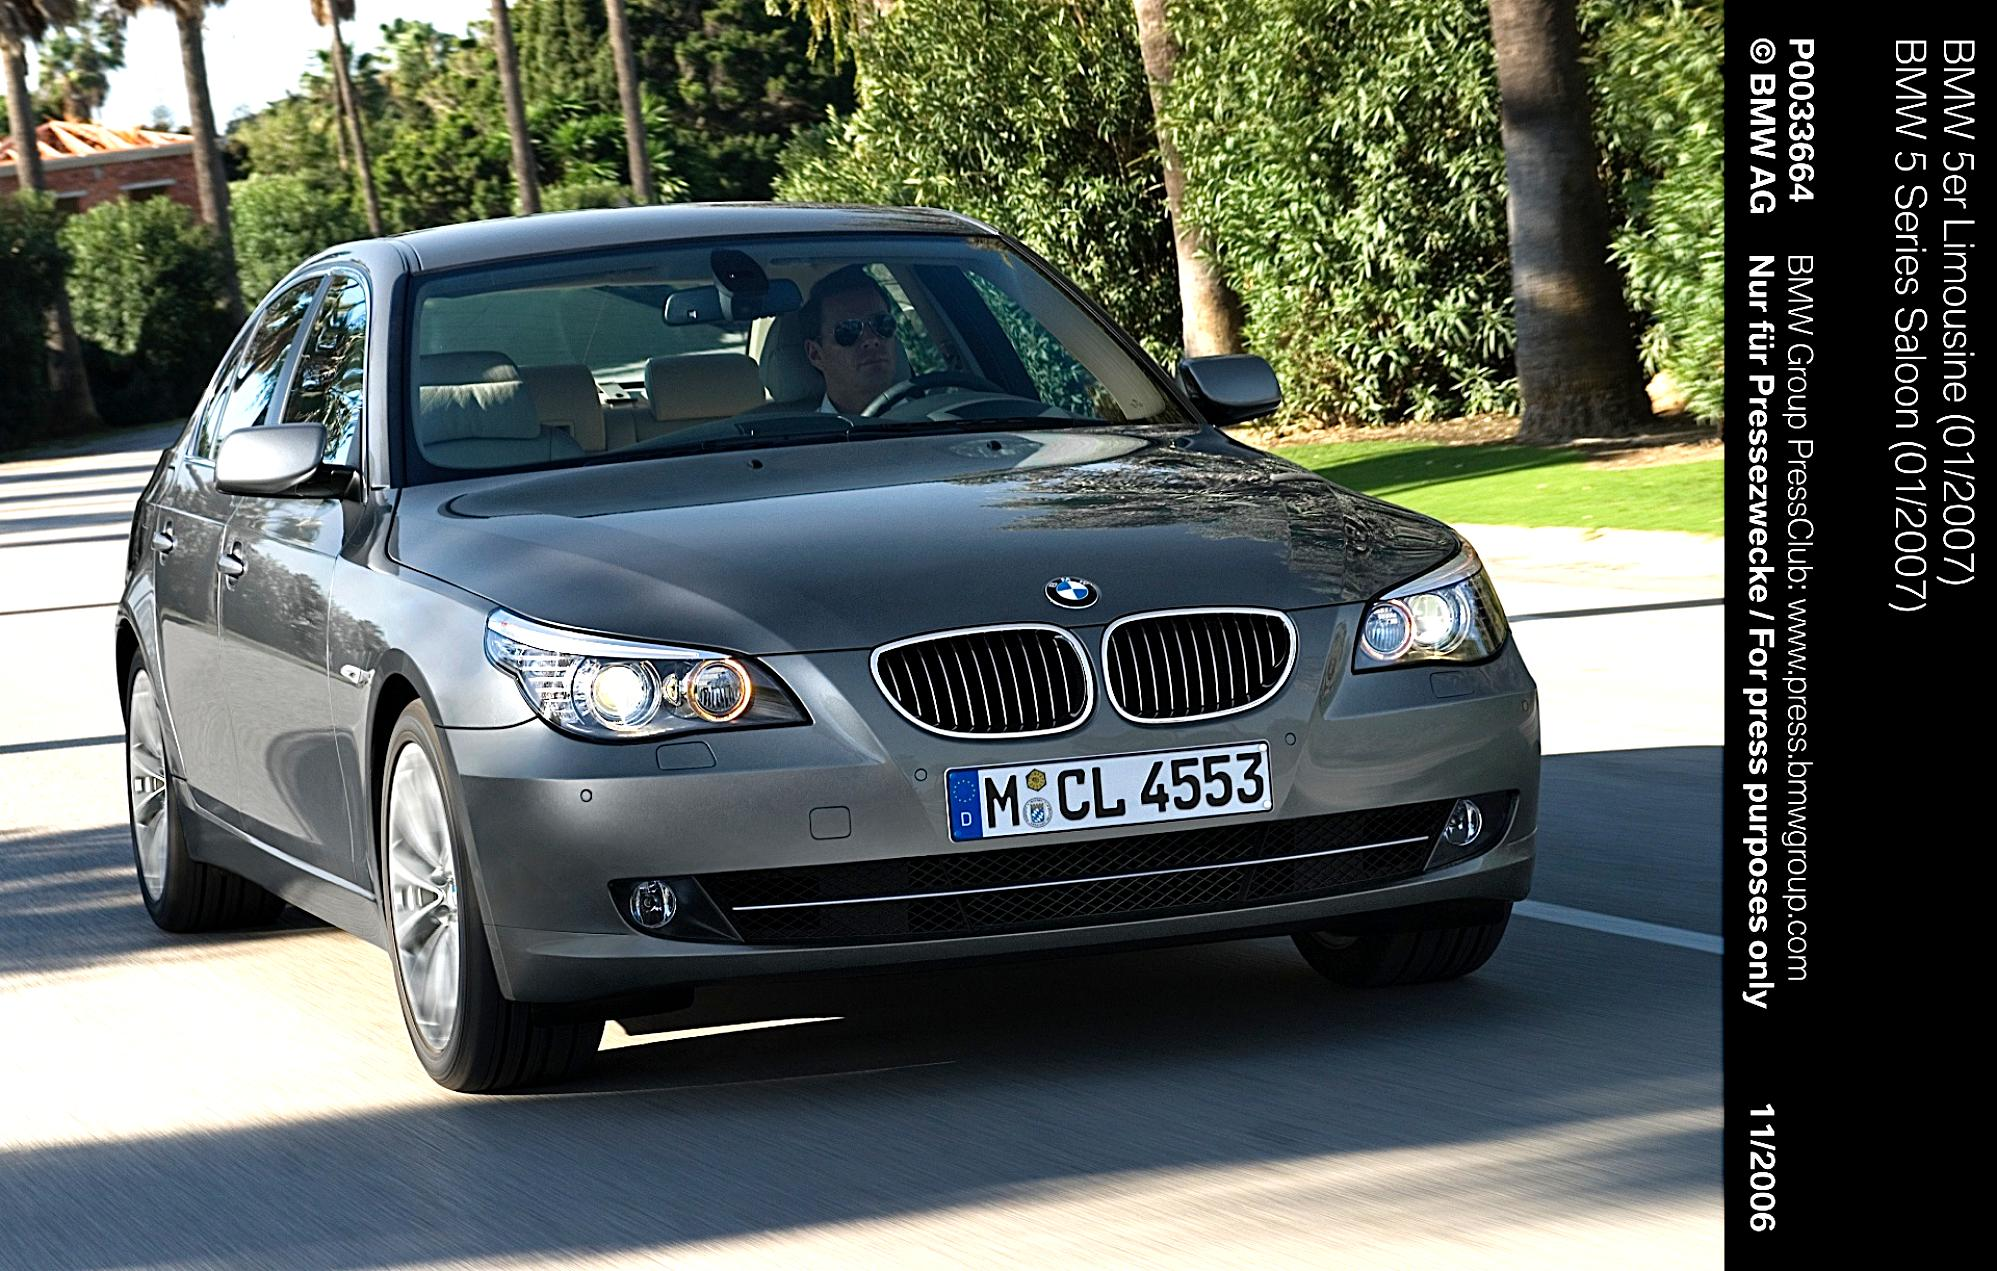 bmw 5 series e60 2007 photos 26 on. Black Bedroom Furniture Sets. Home Design Ideas